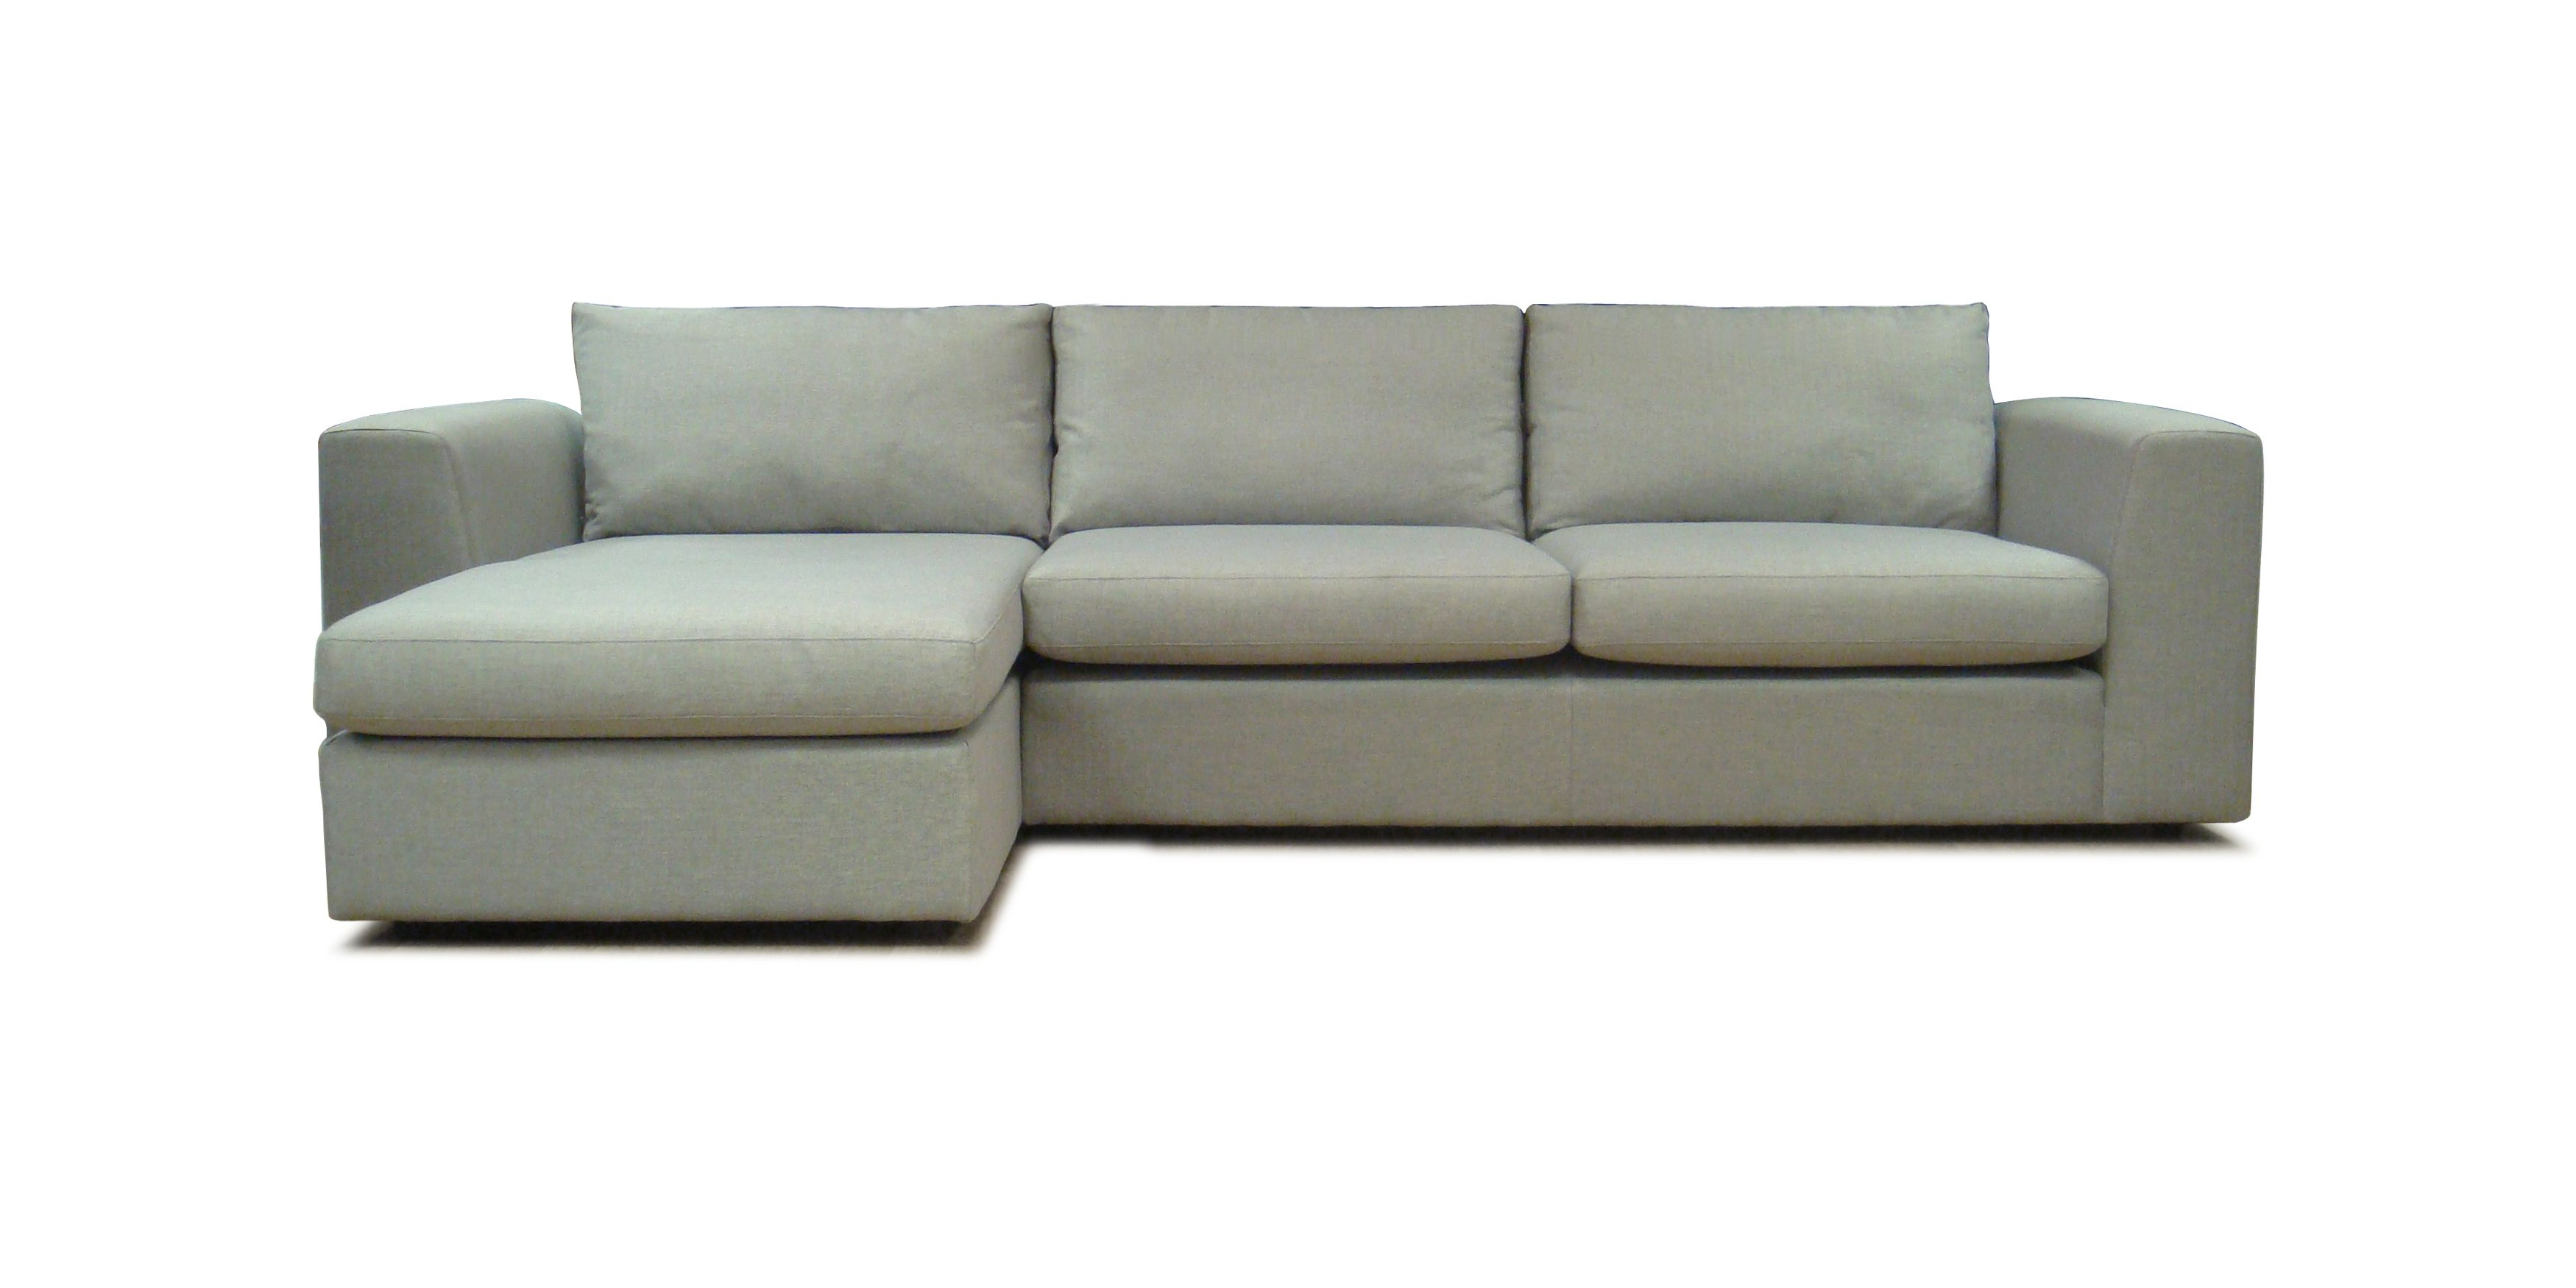 Chaise end sofa bed sofa beds for Chaise end sofas